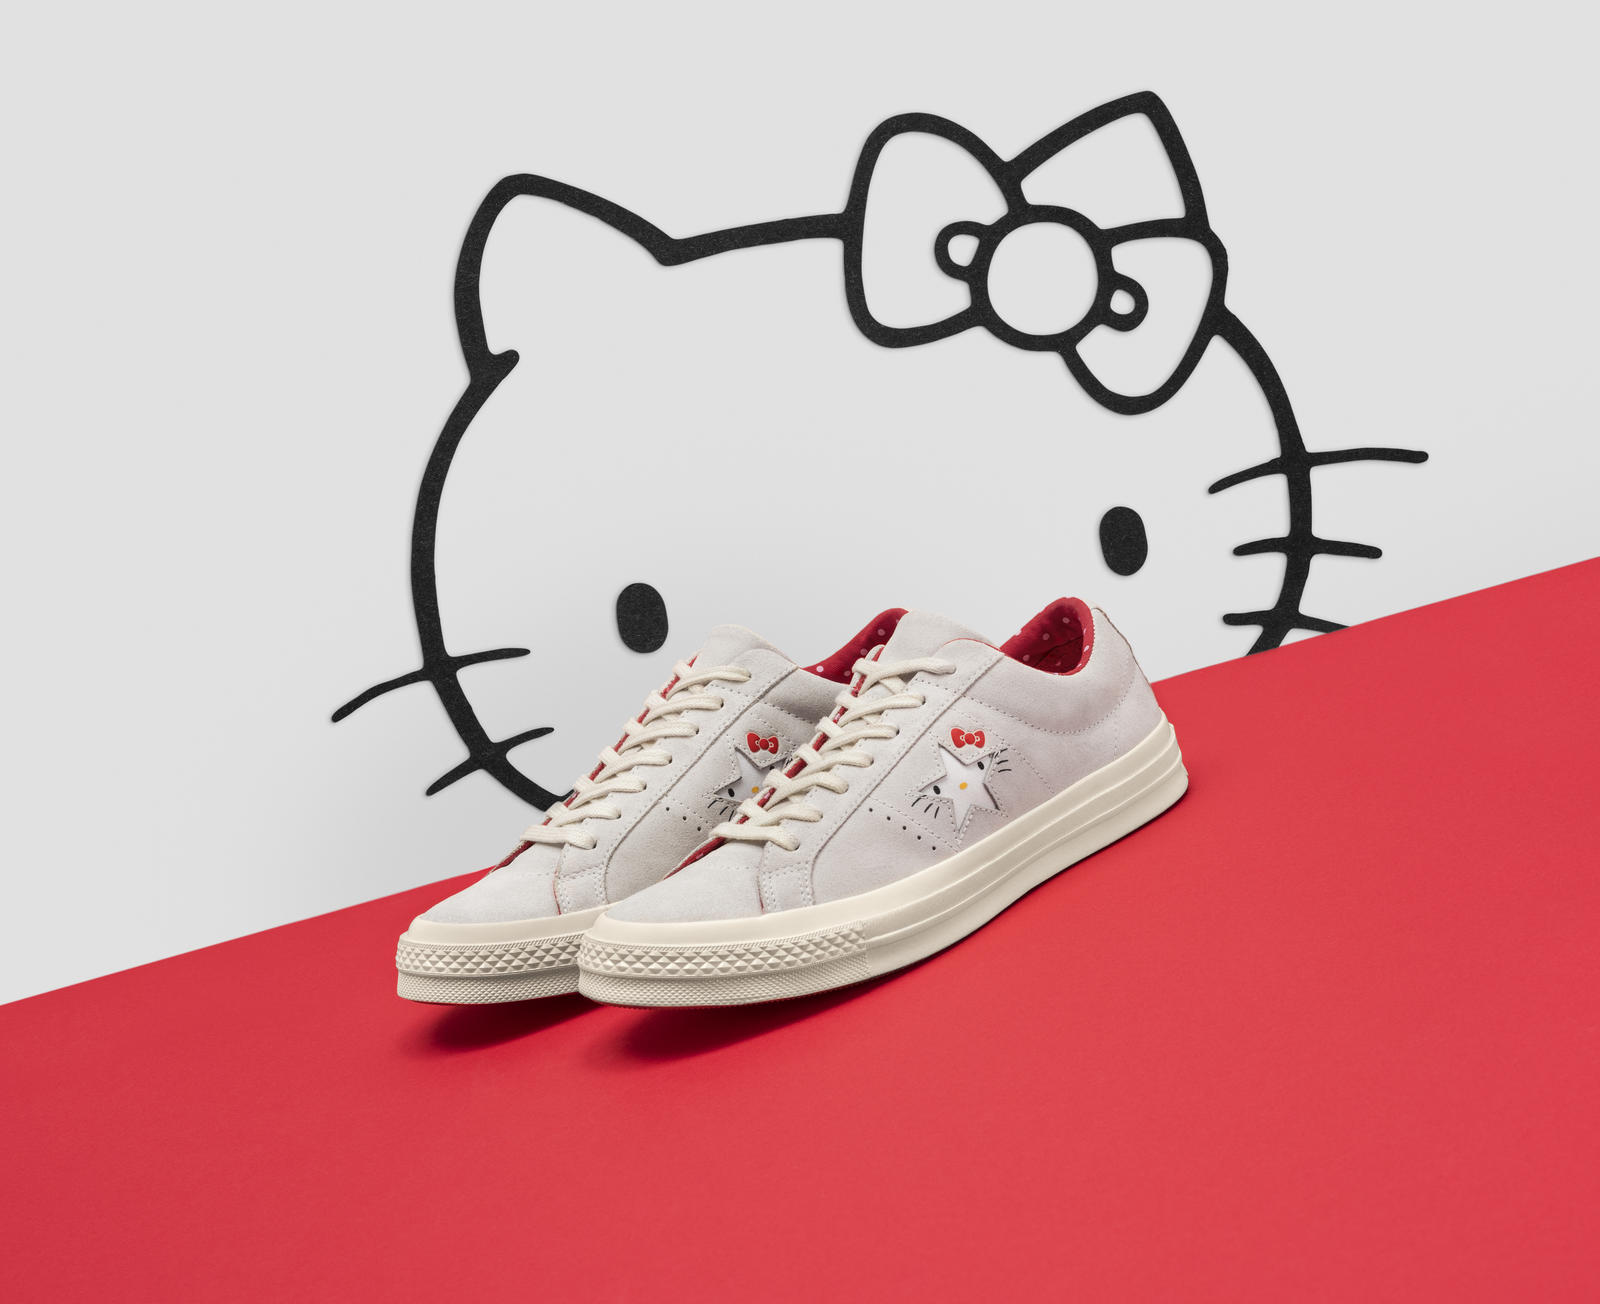 Fa18 os converse x hello kitty vaporous gray 162937c 001 native 1600